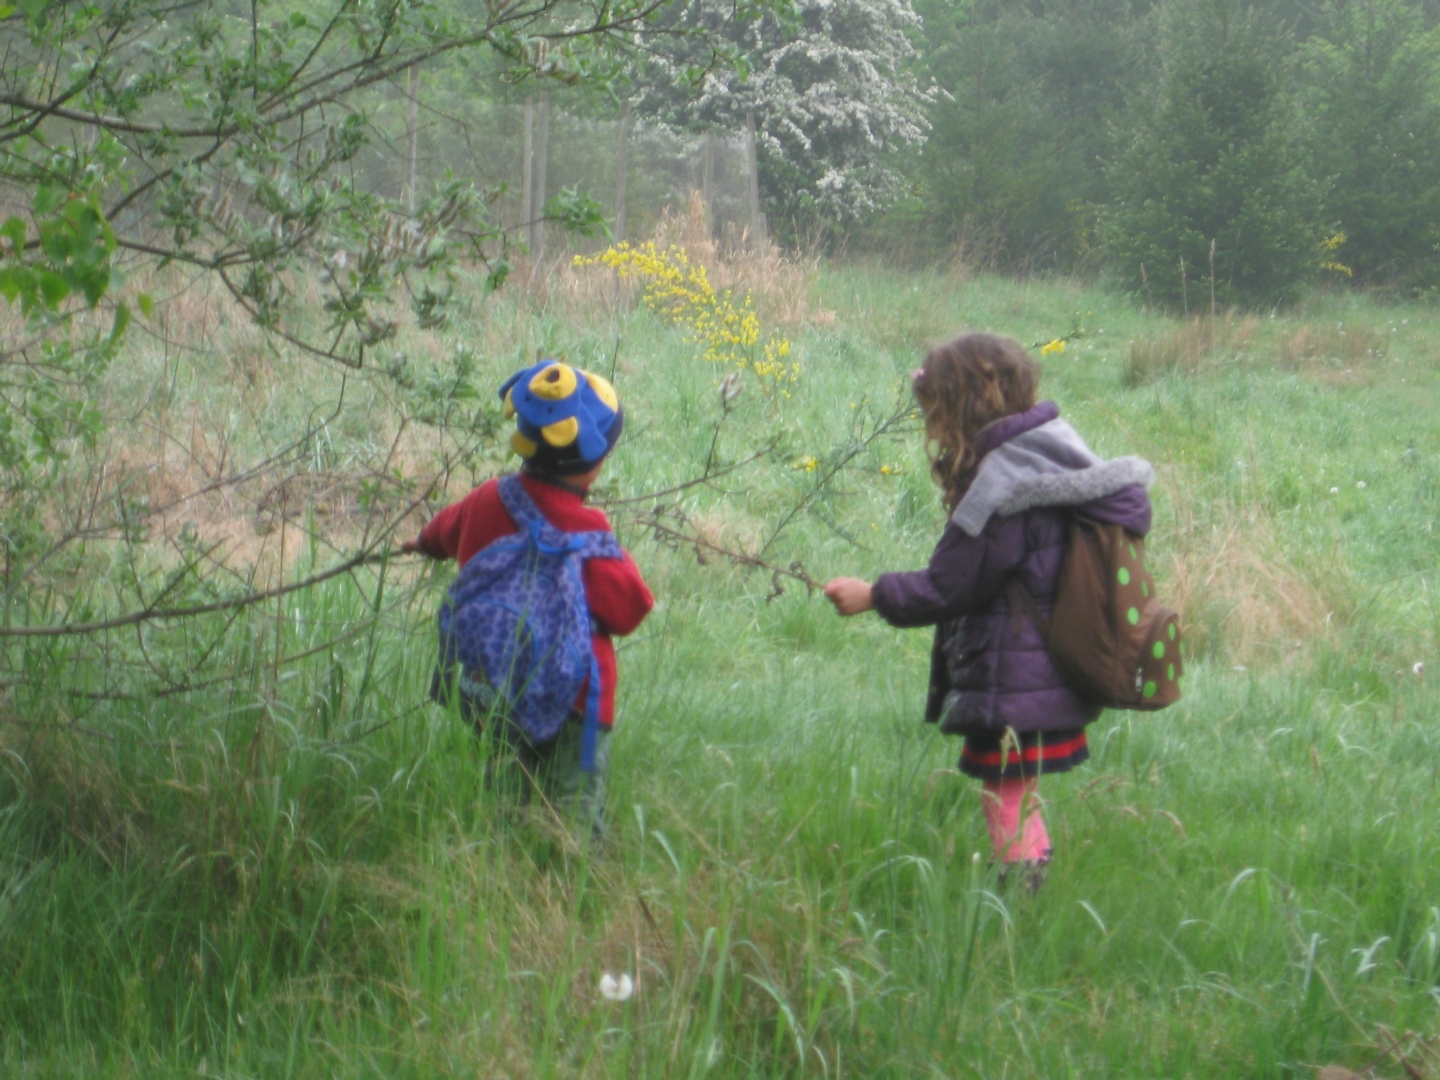 The day was wet with spring rain ... yet these two  kids were enthralled by the willow catkins. Enchanting! - photo by Jane